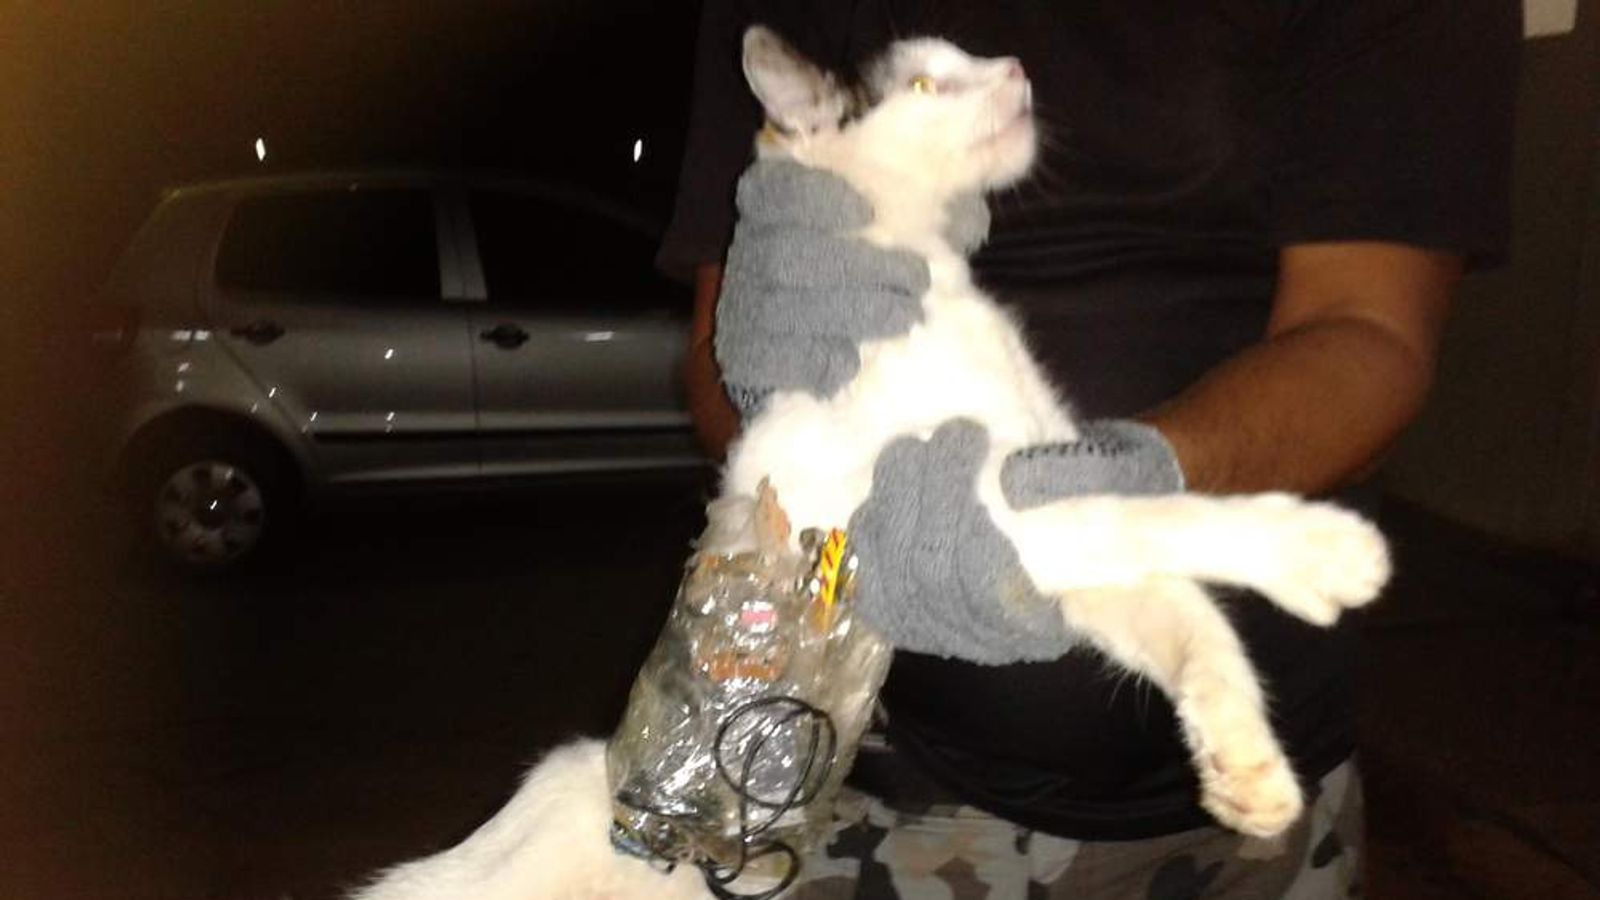 Guards hold a cat that has items taped to its body at a medium-security prison in Arapiraca, Brazil